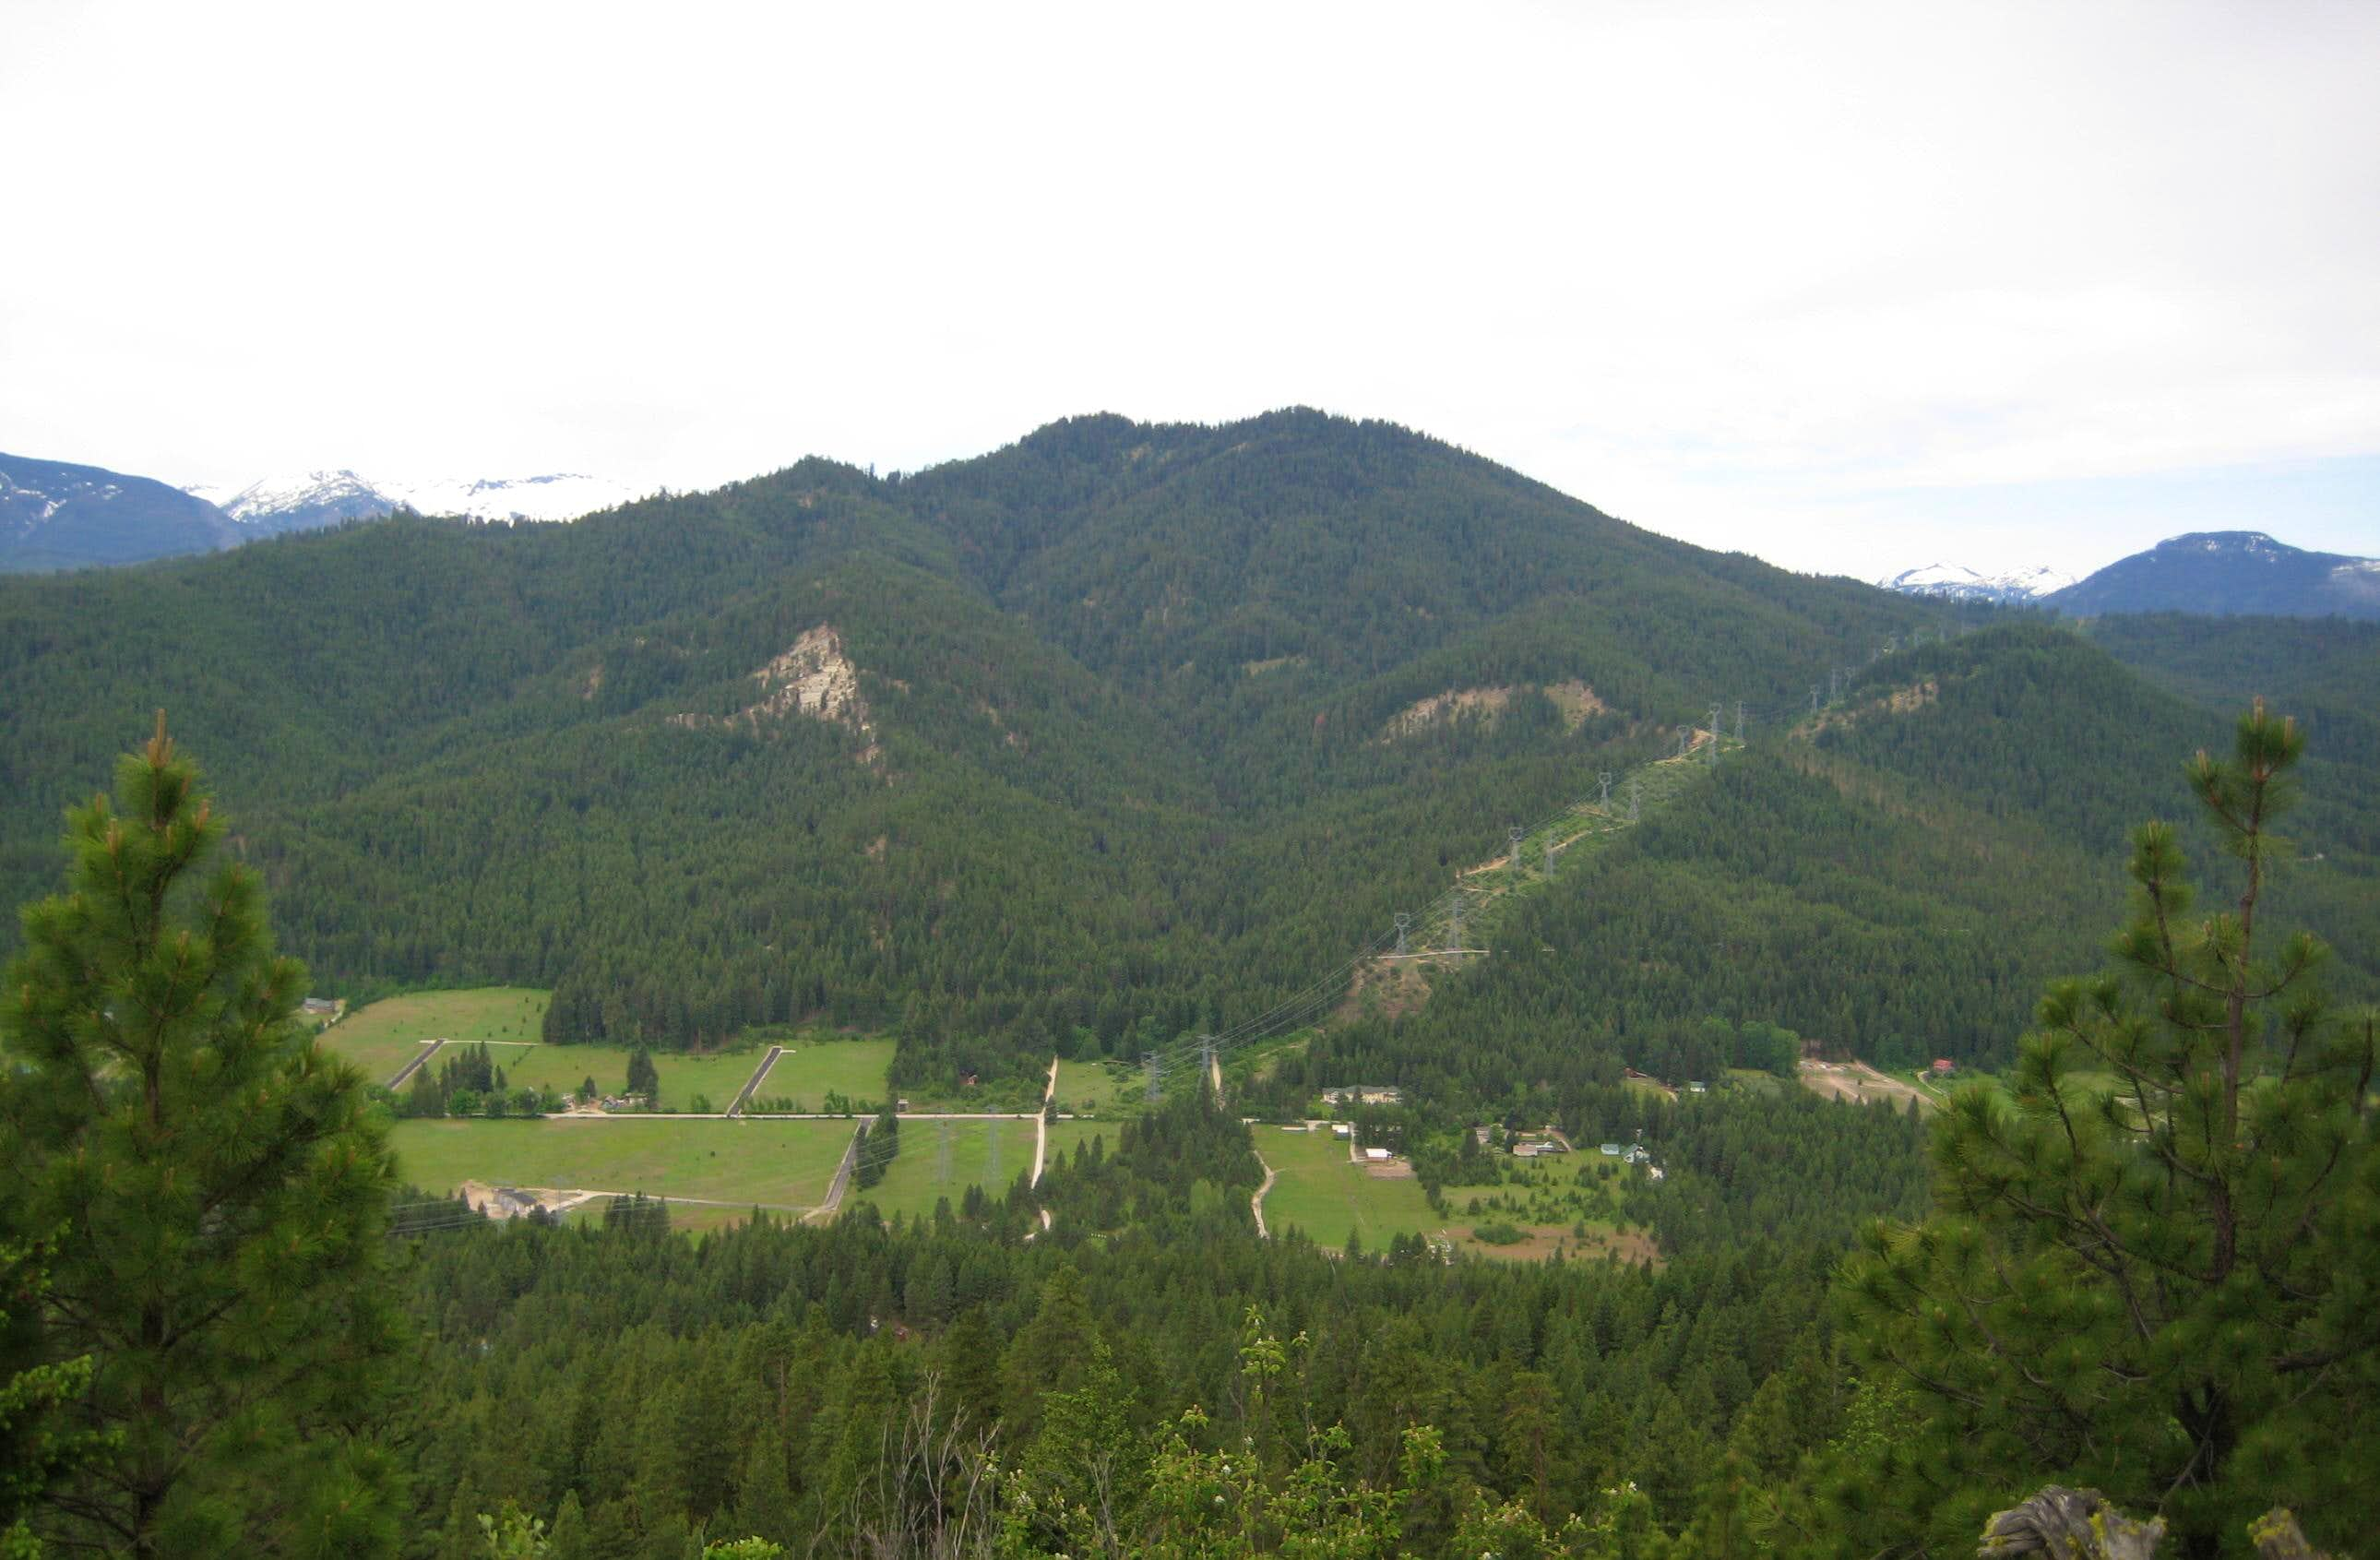 Natapoc Mountain